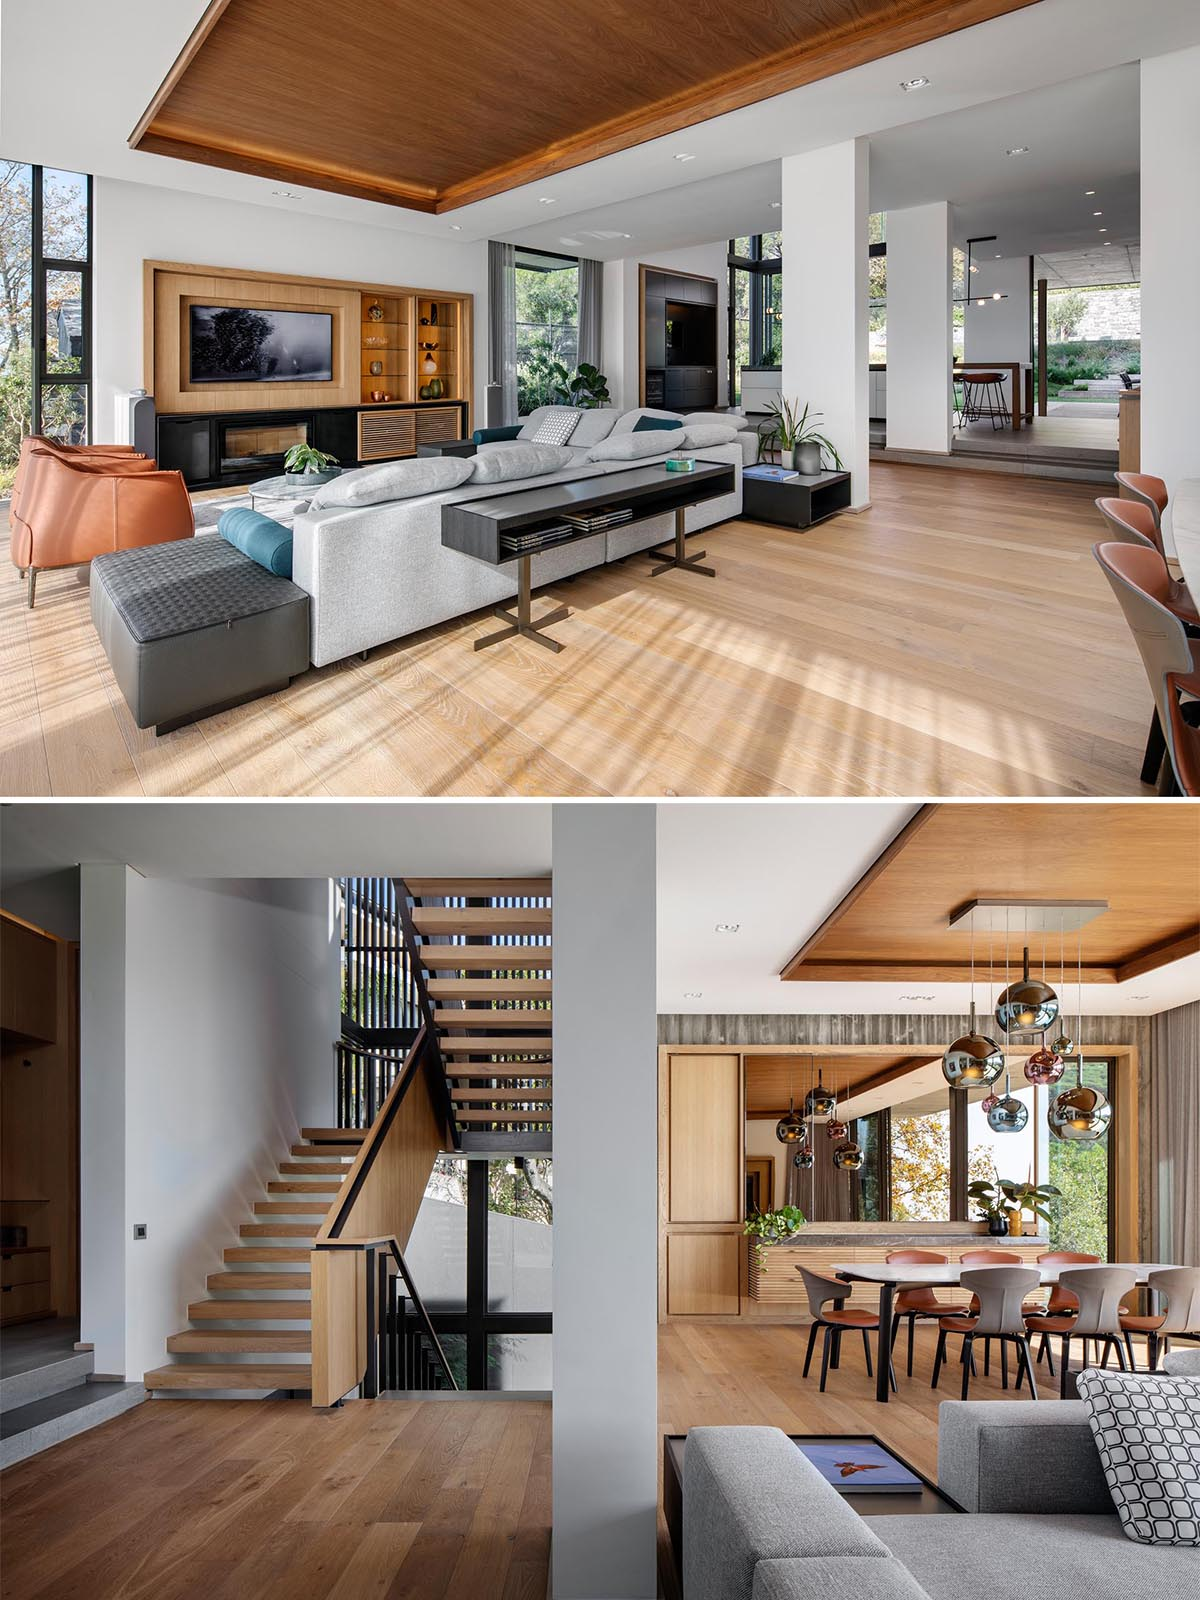 The open plan interior  of this modern home includes a spacious living room and dining room, while a couple of steps leads up to the kitchen.